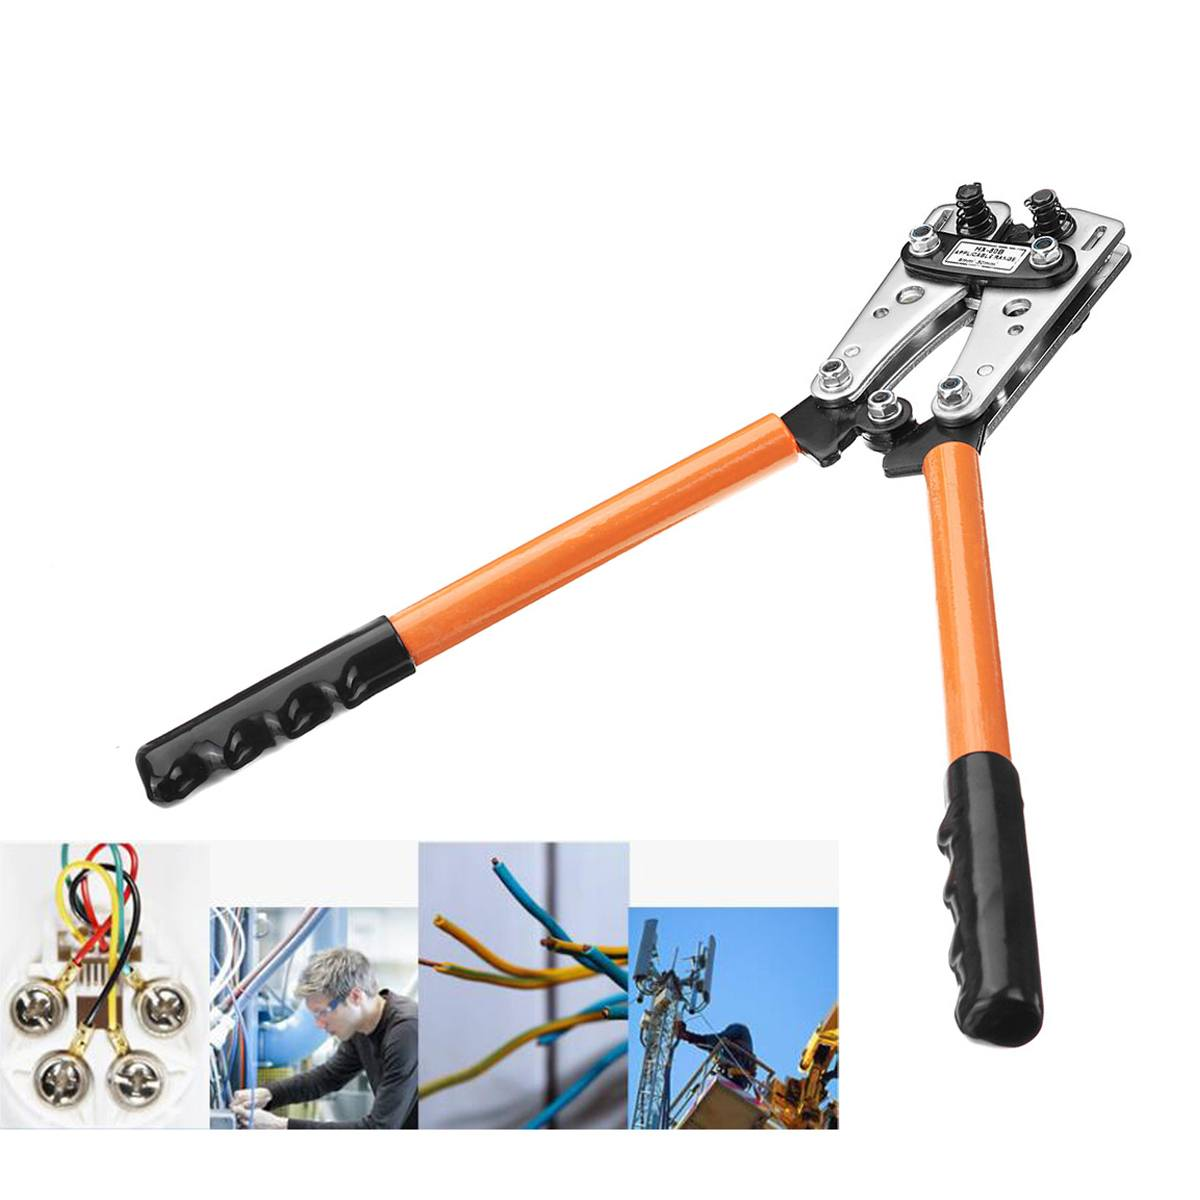 Tools Tool Hand Cable Plier Crimp Pliers Crimping Lugs Terminal Terminal Cable HX Hex Tube Battery Crimper 6 Tool 50mm 50B 2